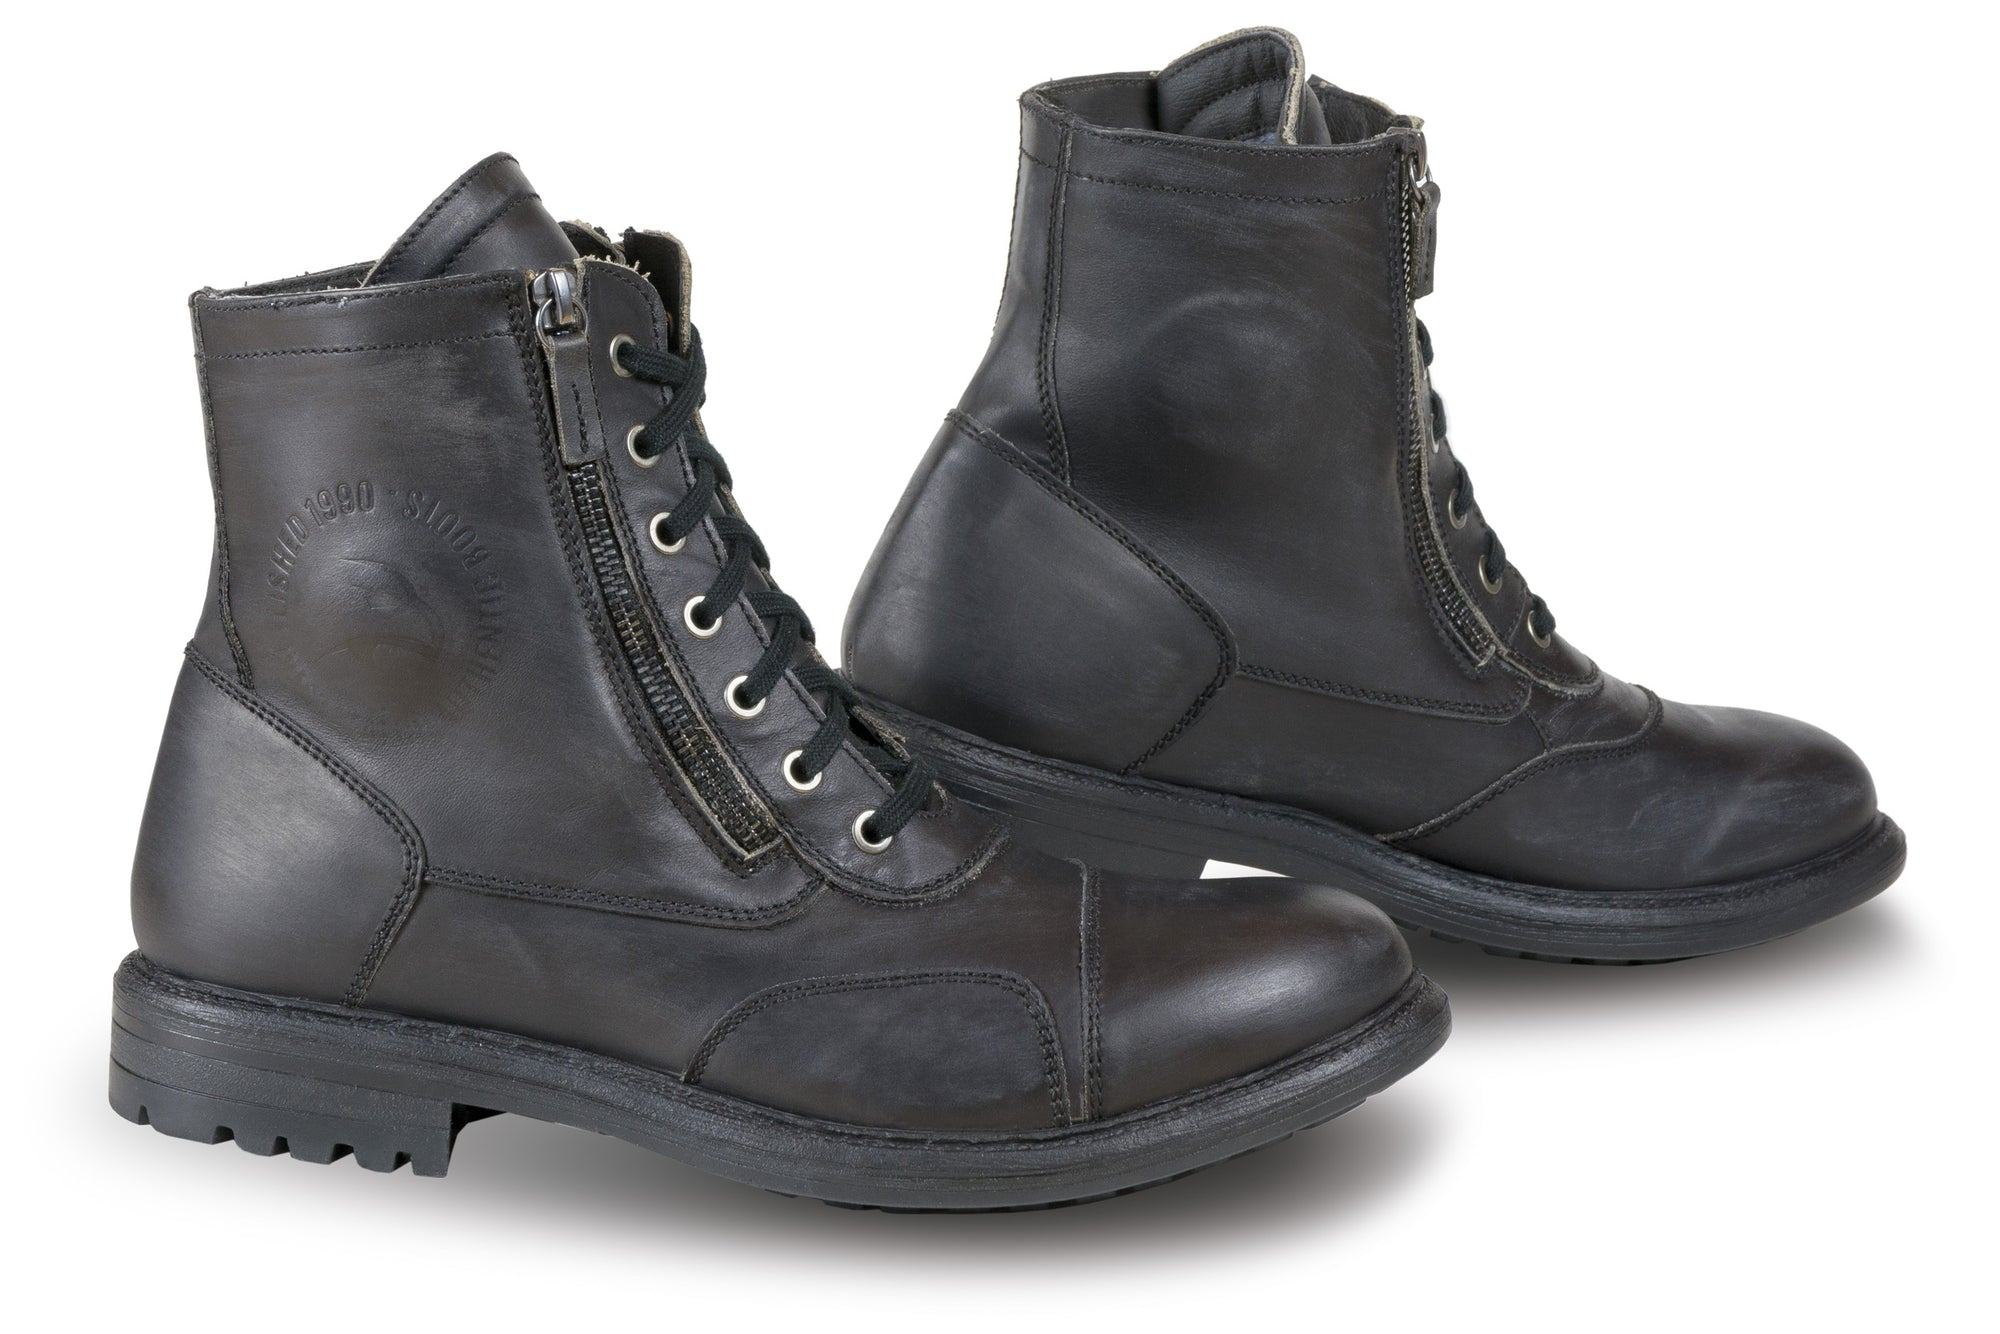 Falco Aviator Boots, Boots, Falco - Averys Motorcycles